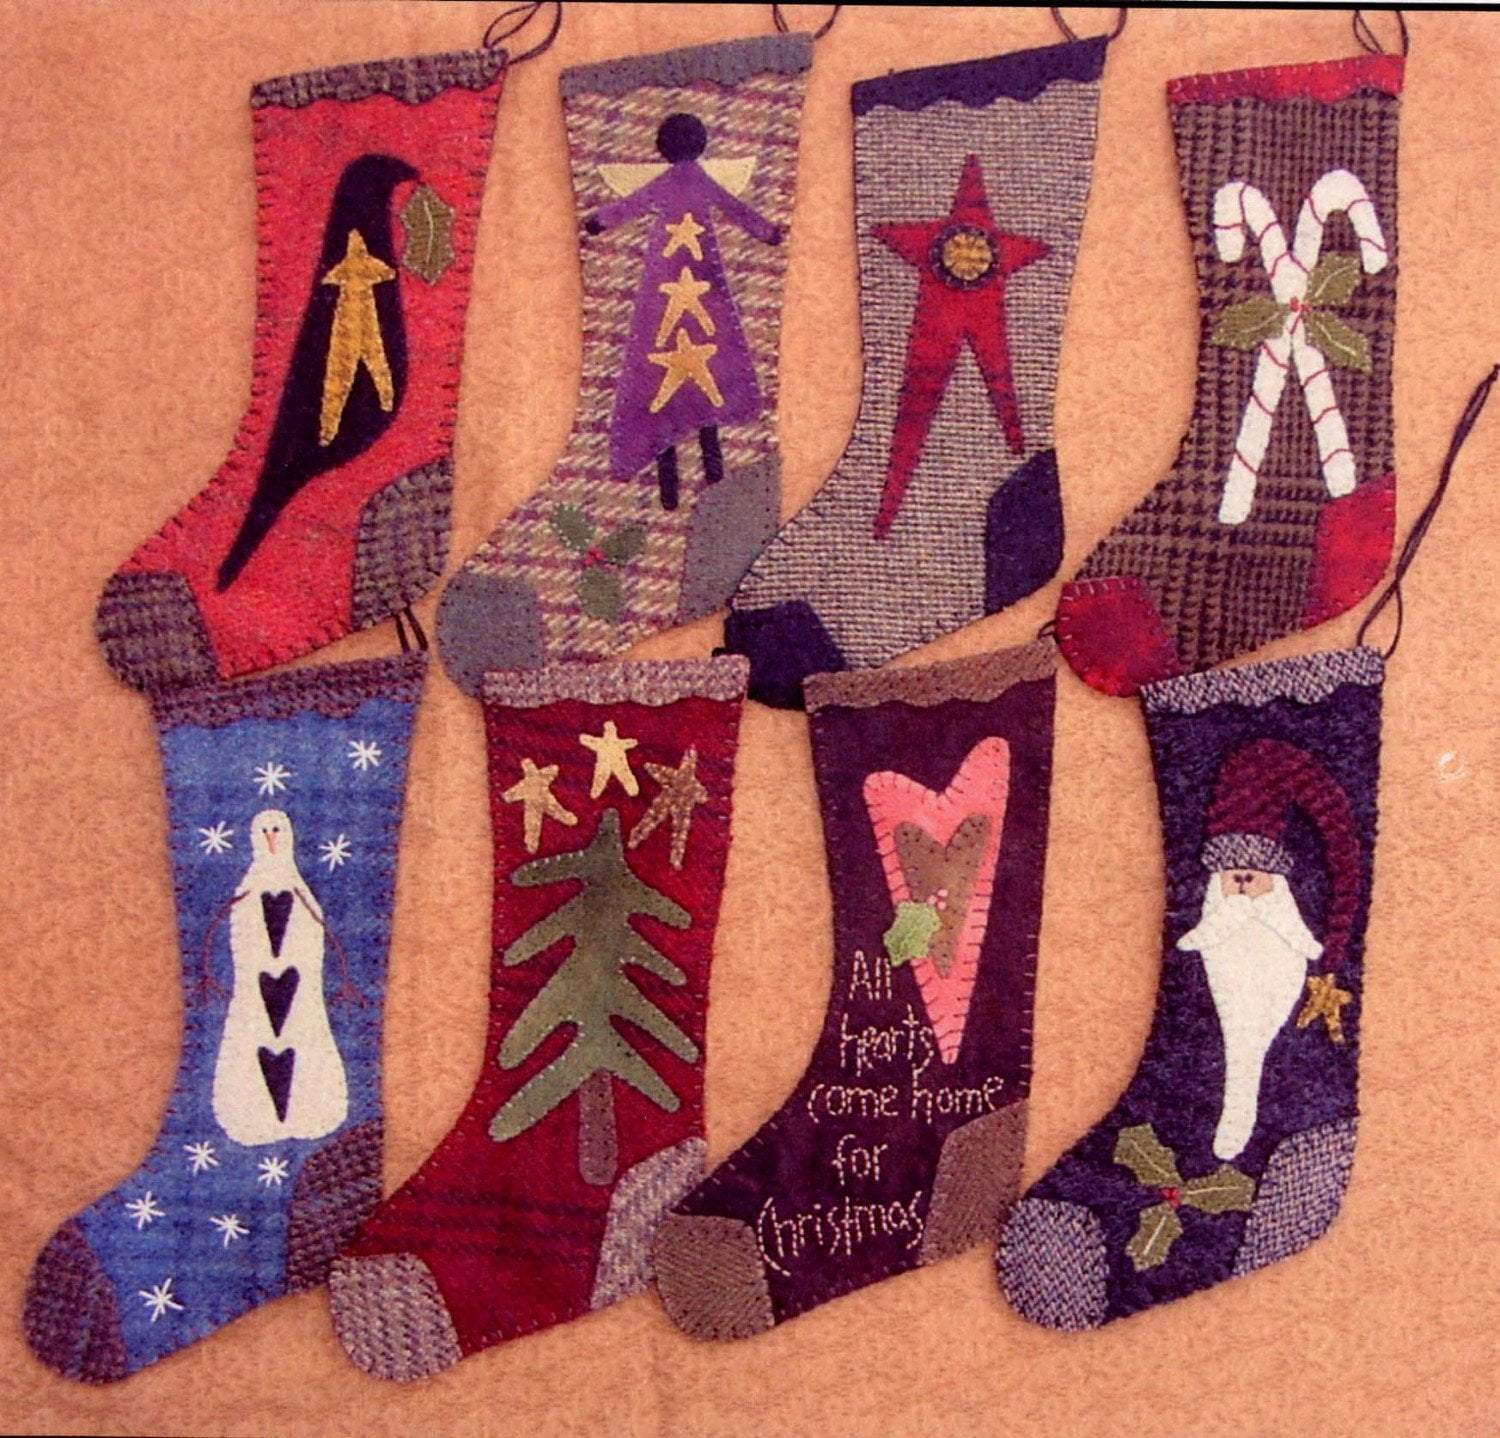 "Primitive Gatherings - 9"" Wool Christmas Stockings - Pattern - Designed by Lisa Bongean - Flannel or Wool applique - C - RebsFabStash"